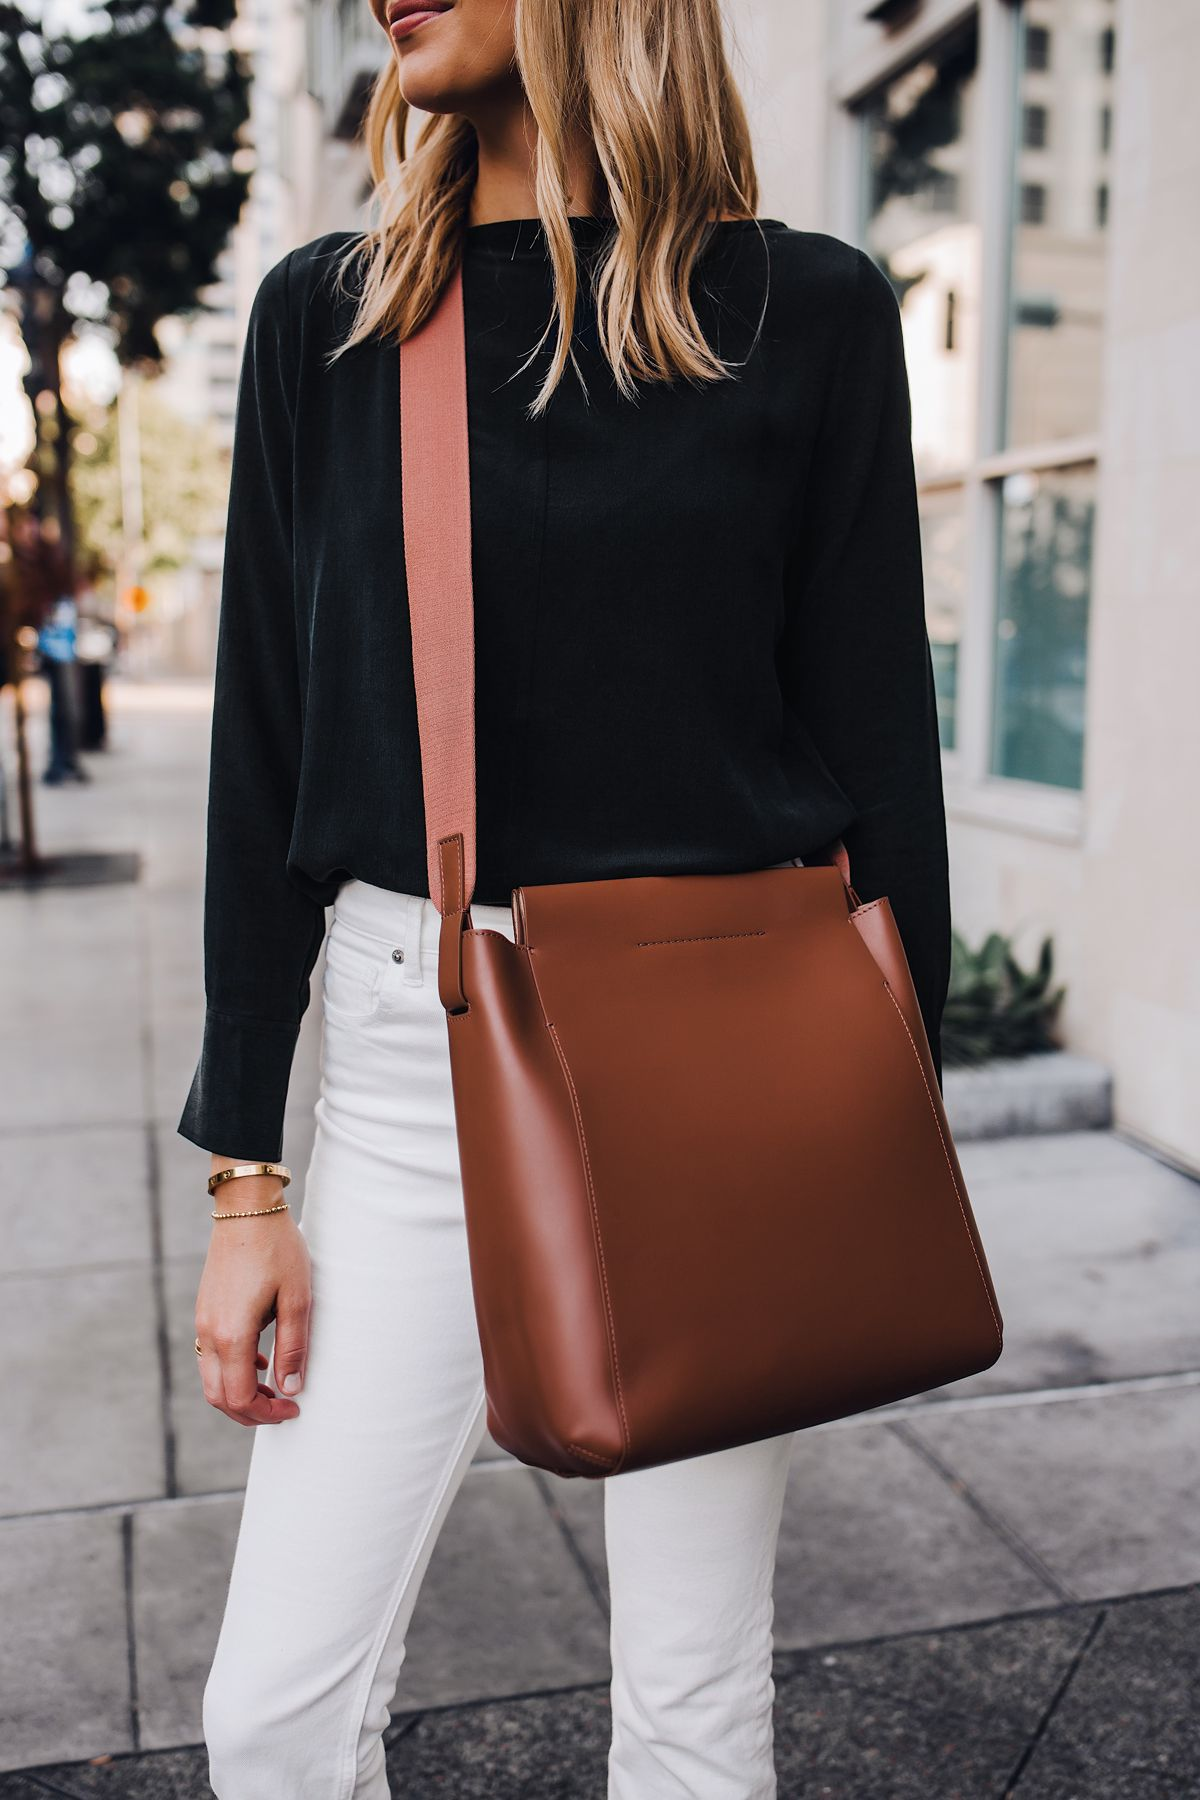 f3898dd062621 Blonde Woman Wearing Everlane Form Bag Brown Messenger Handbag Everlane  Black Silk Long Sleeve Top Everlane White Jeans Fashion Jackson San Diego  Fashion ...